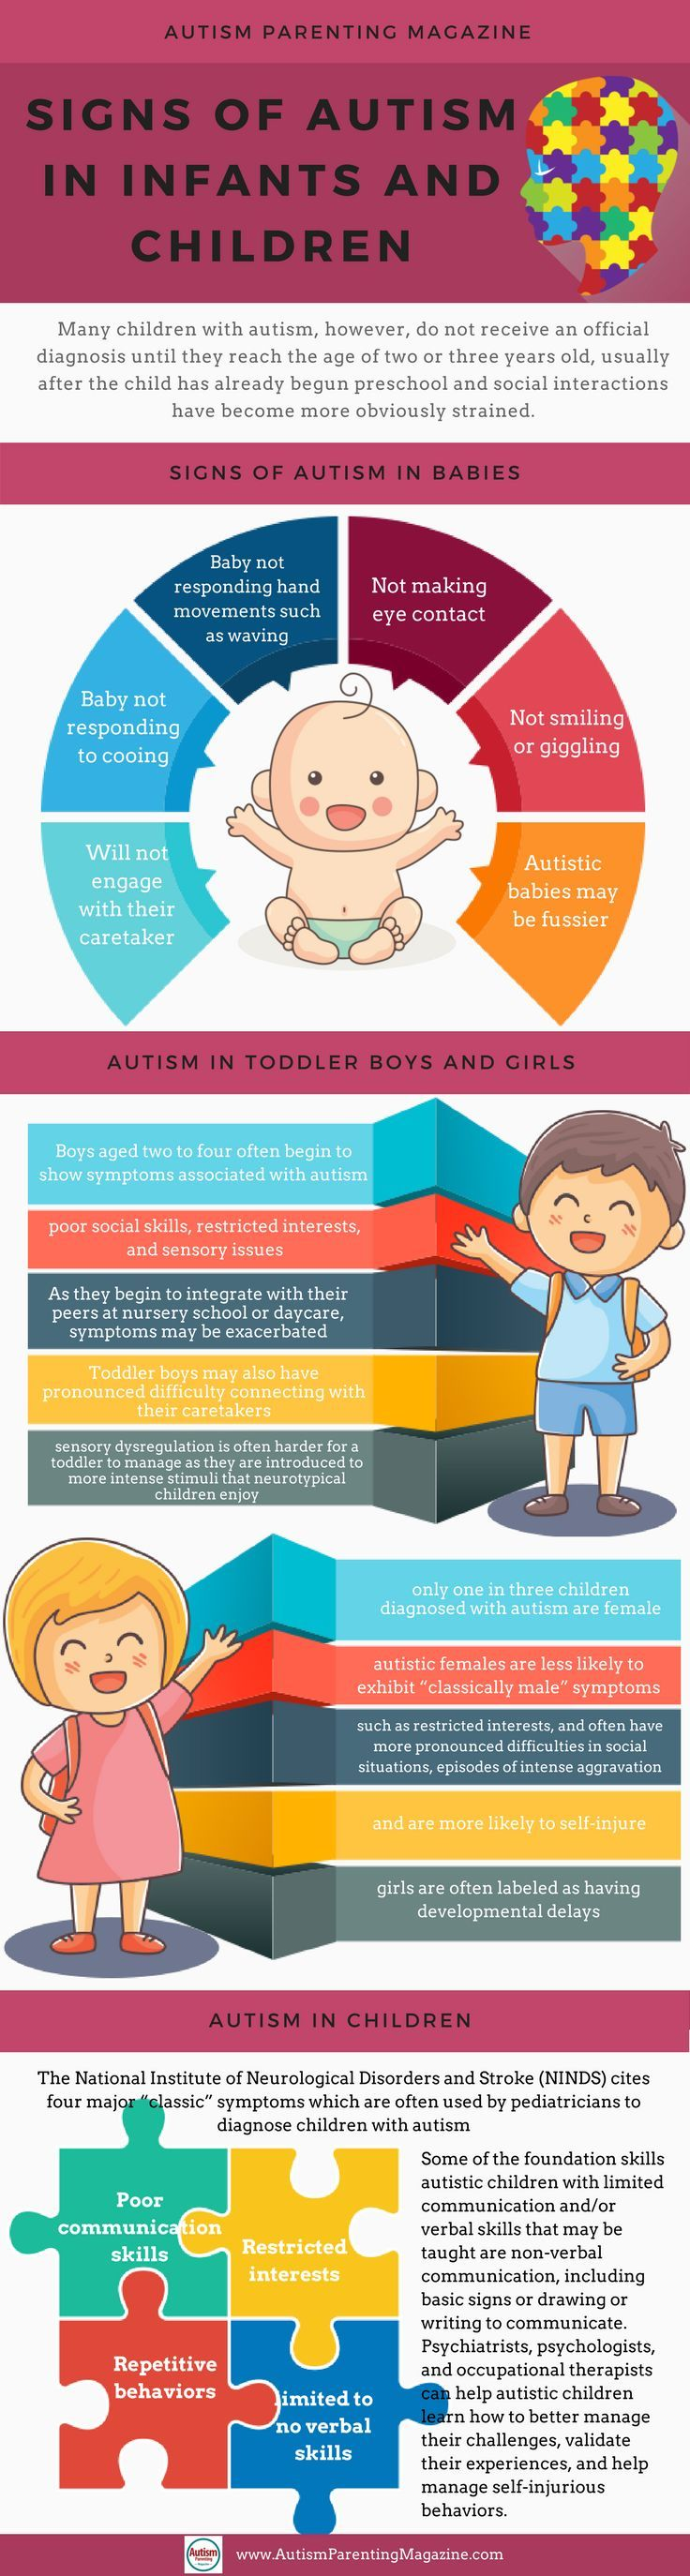 Best 25 Autism signs ideas on Pinterest